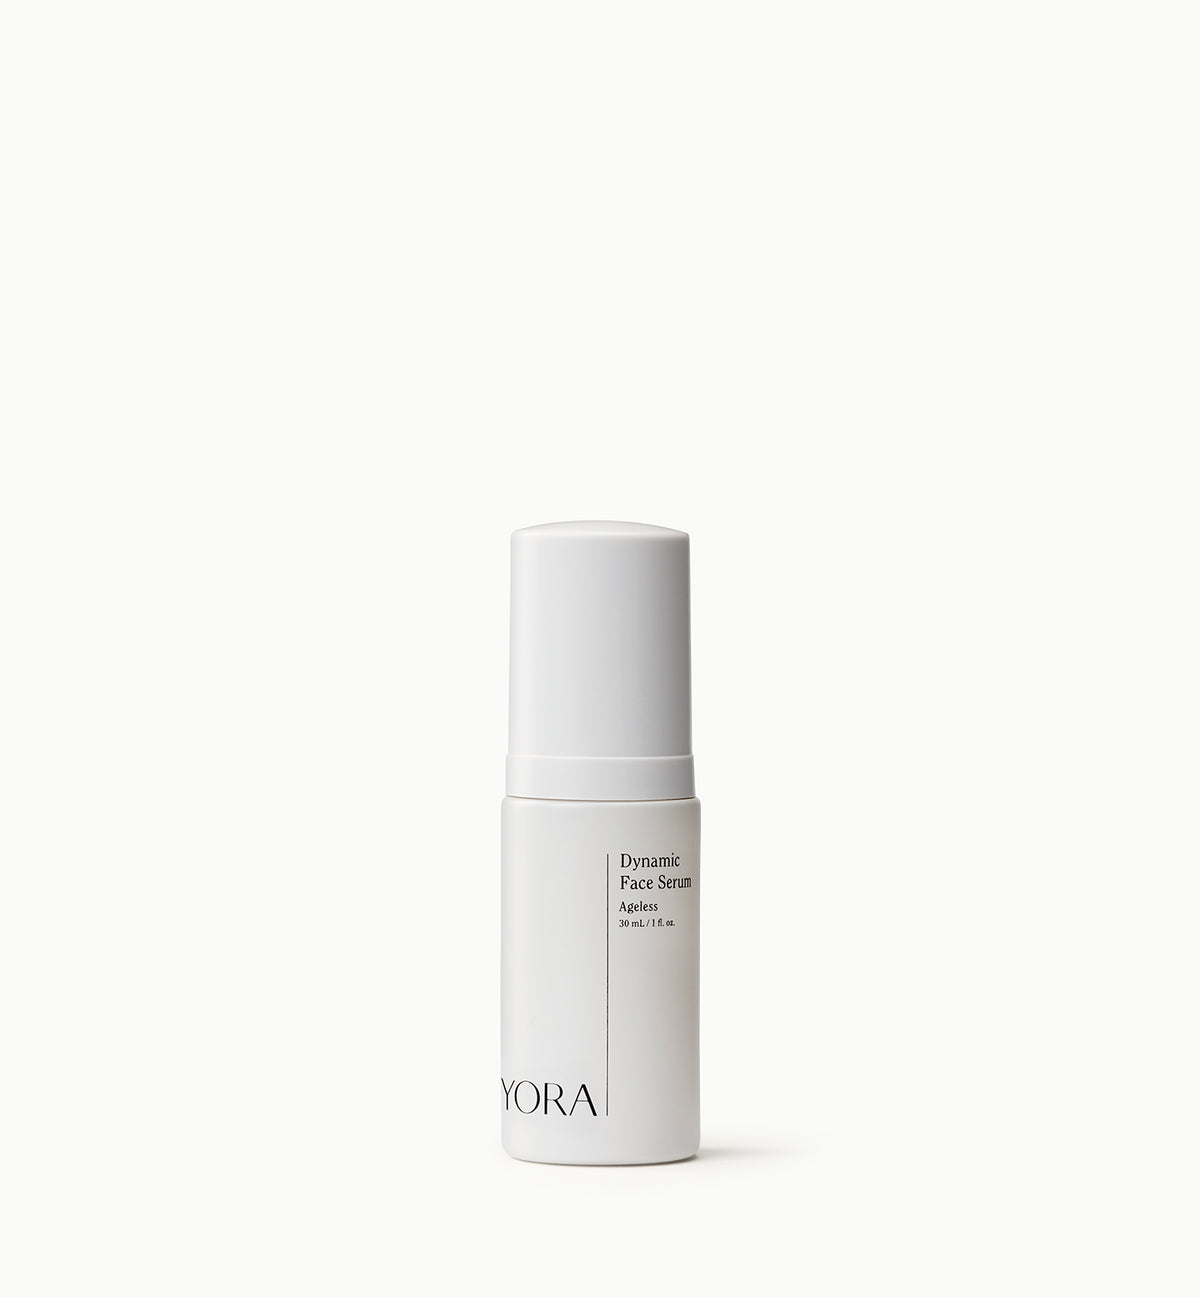 Dynamic Face Serum